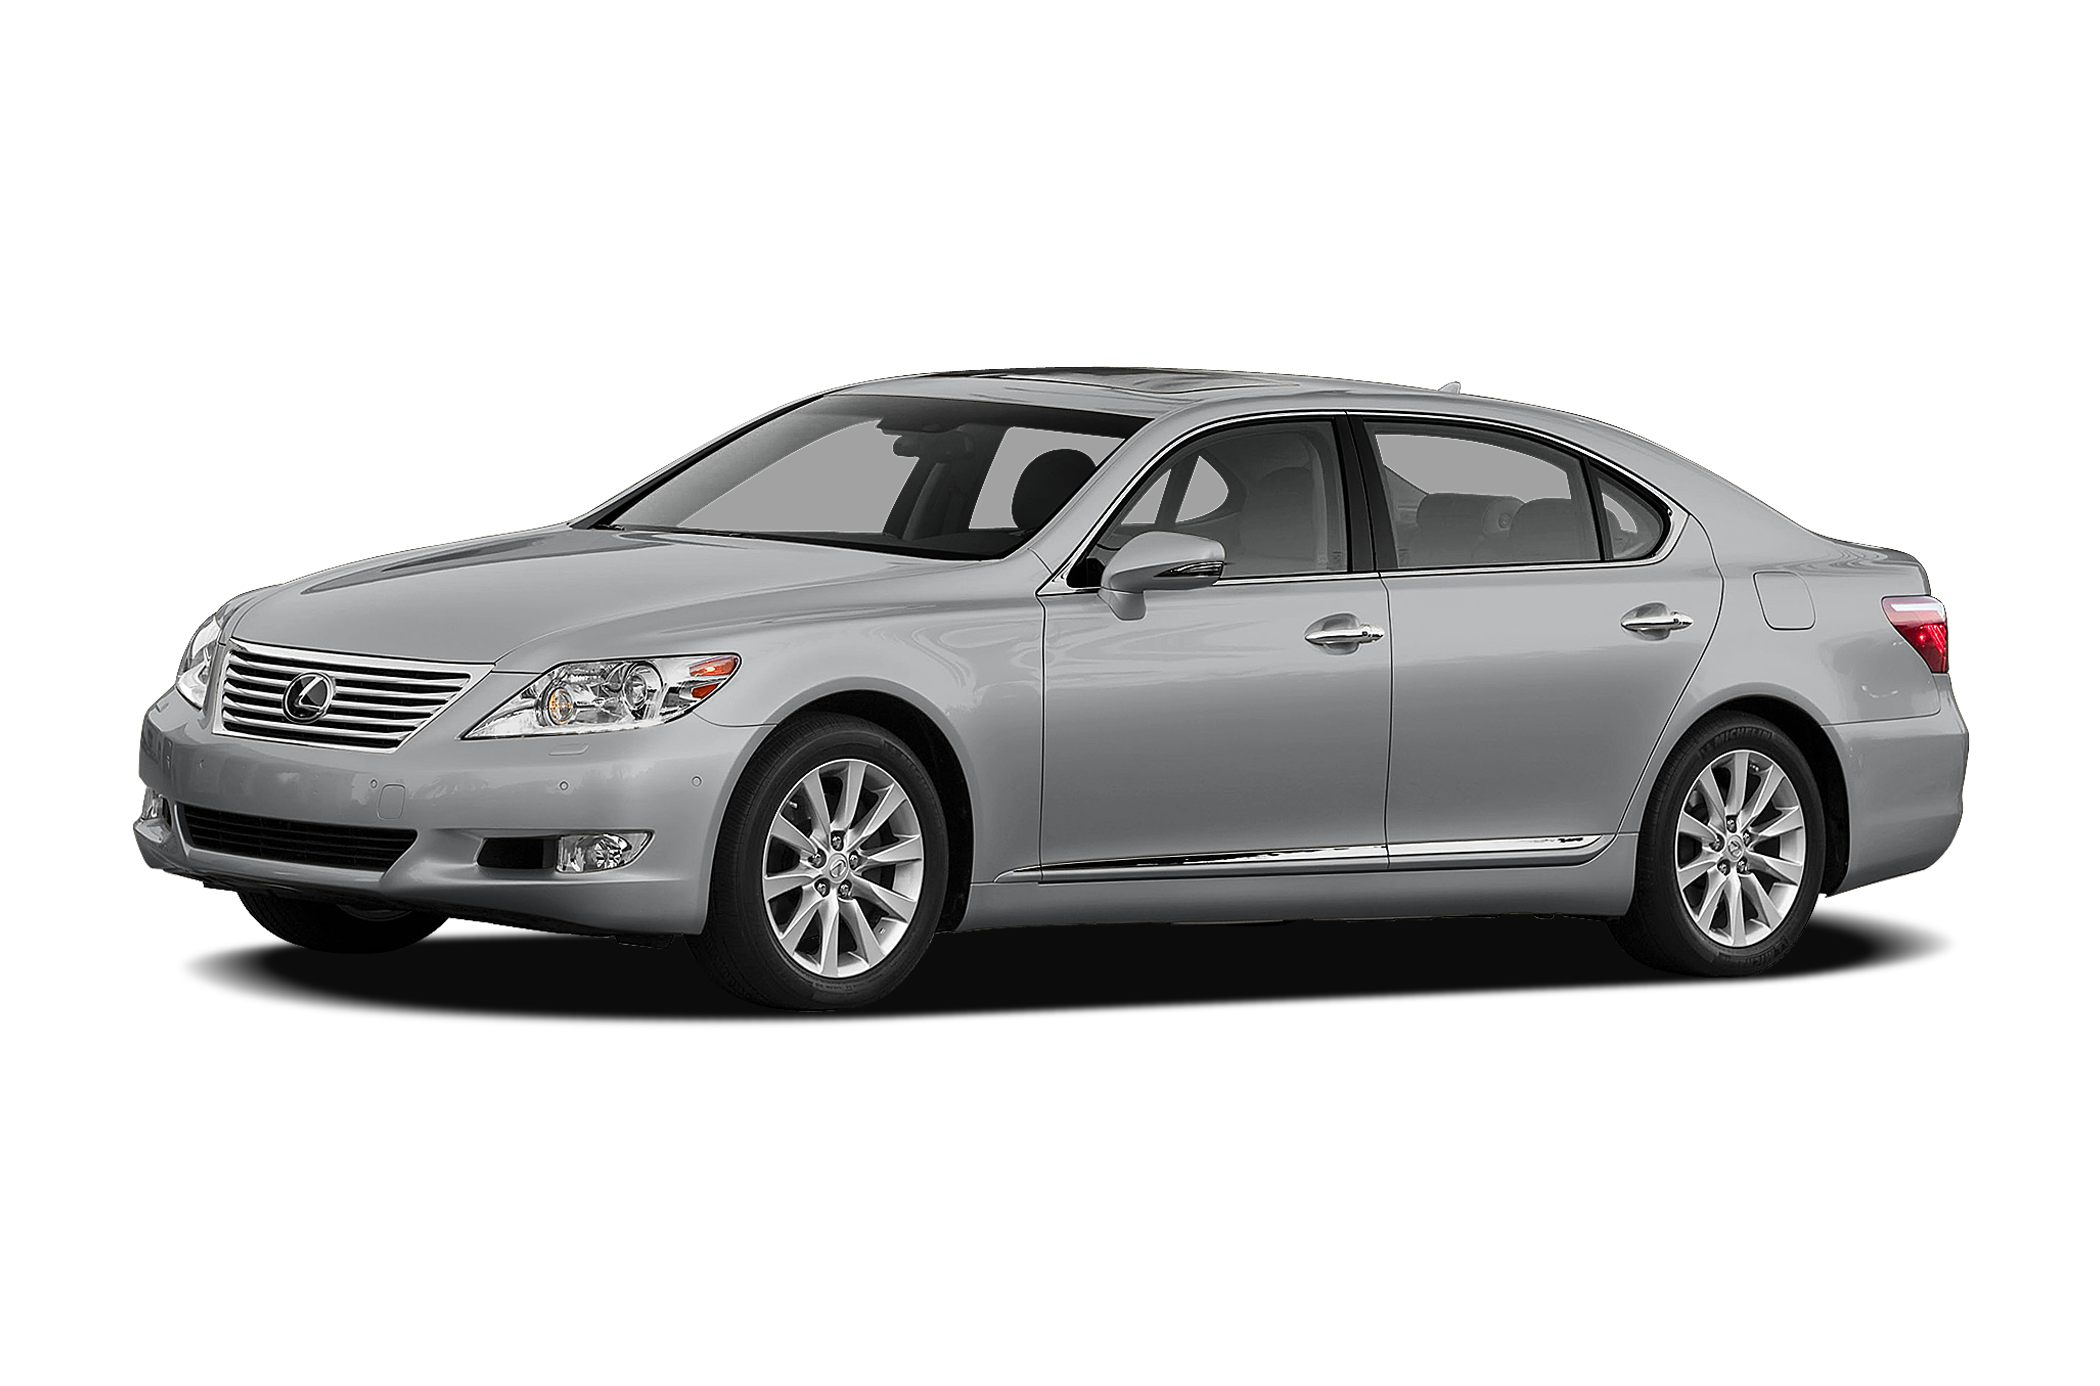 2011 Lexus LS 460 Base Moonroof Navigation and Back Up Camera Come to Route 44 Toyota Scion Per